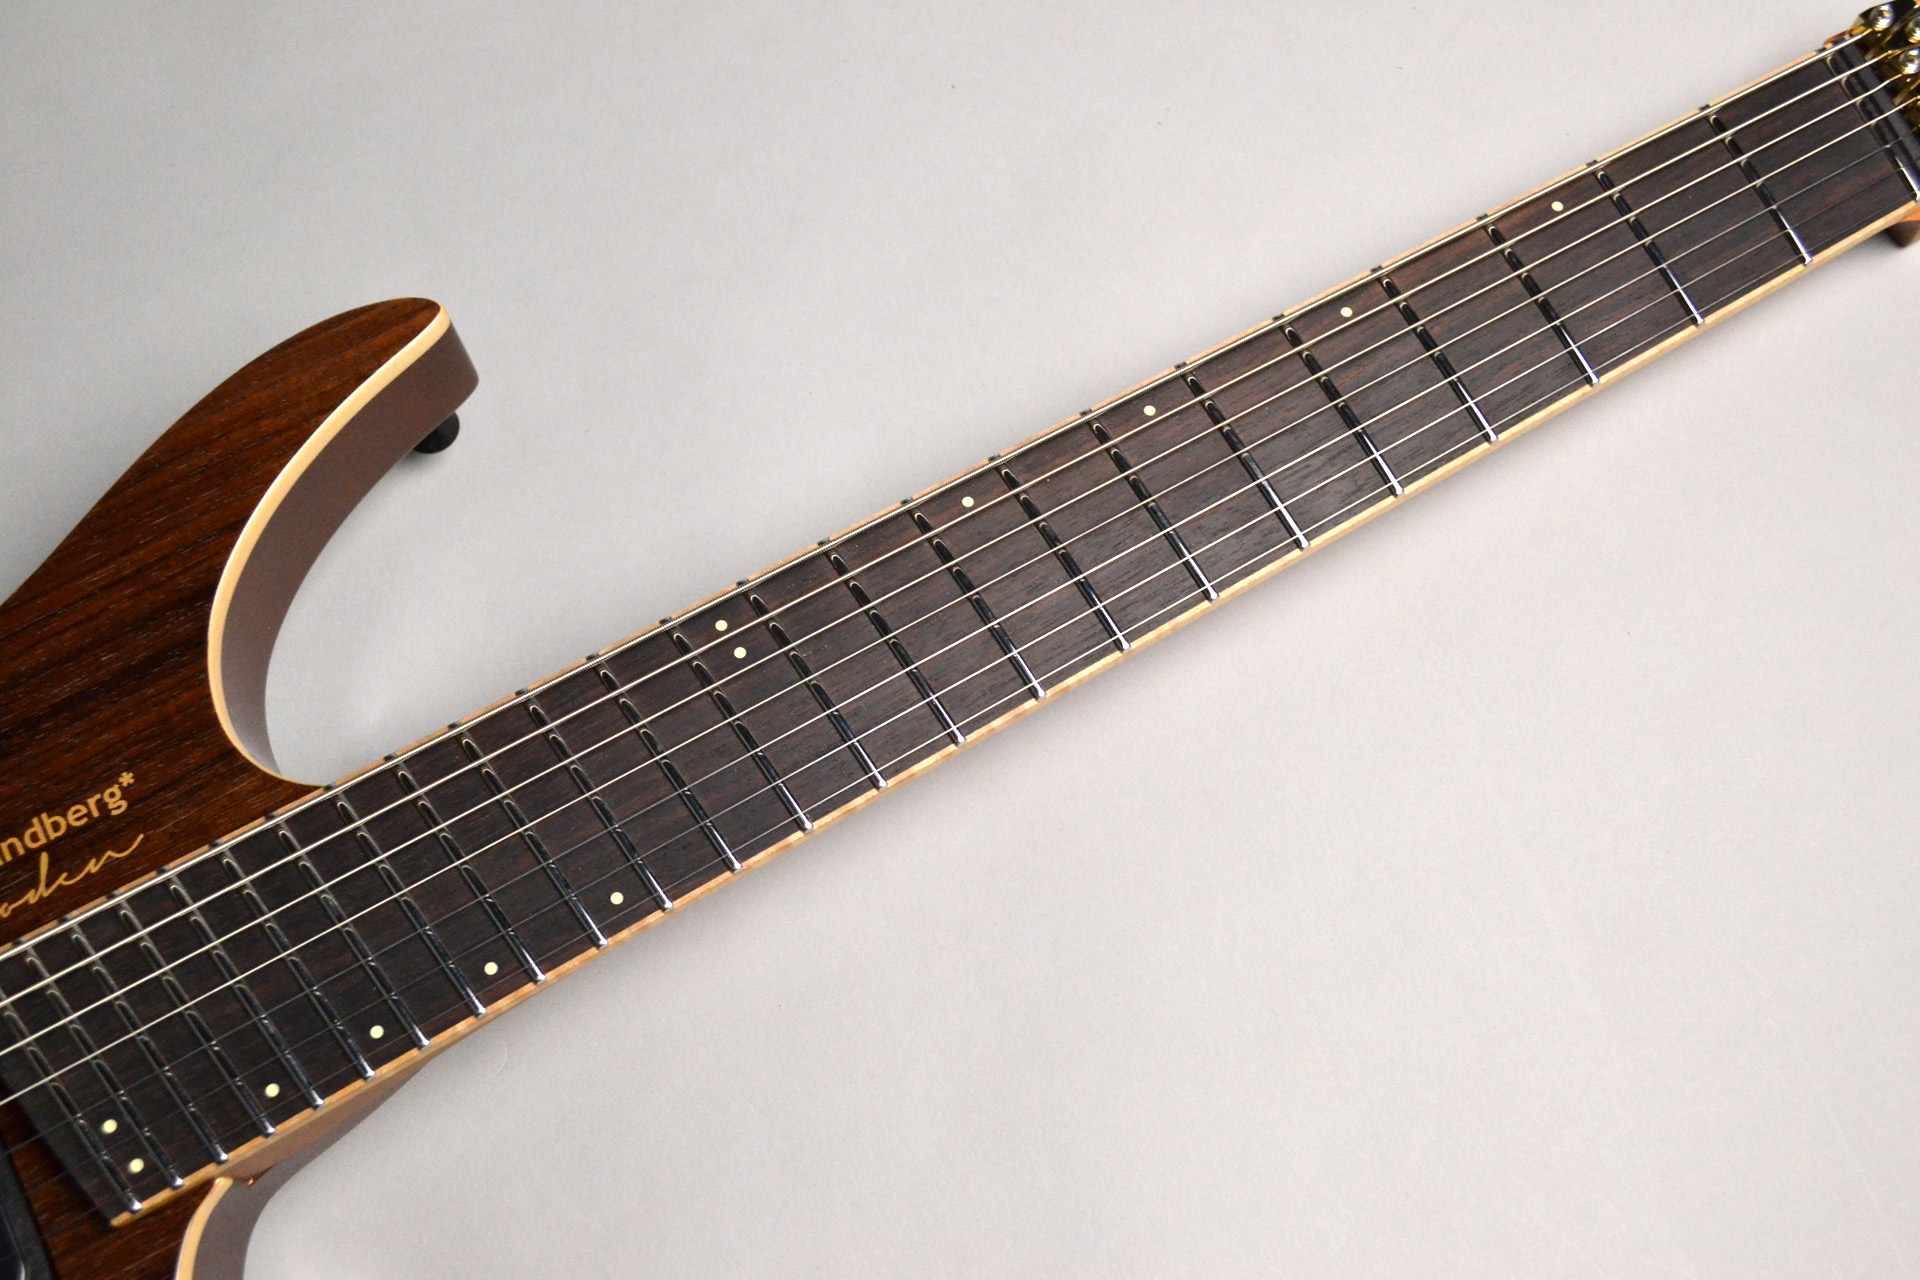 Boden J7 Standard Rosewood Roasted Maple Neckの指板画像